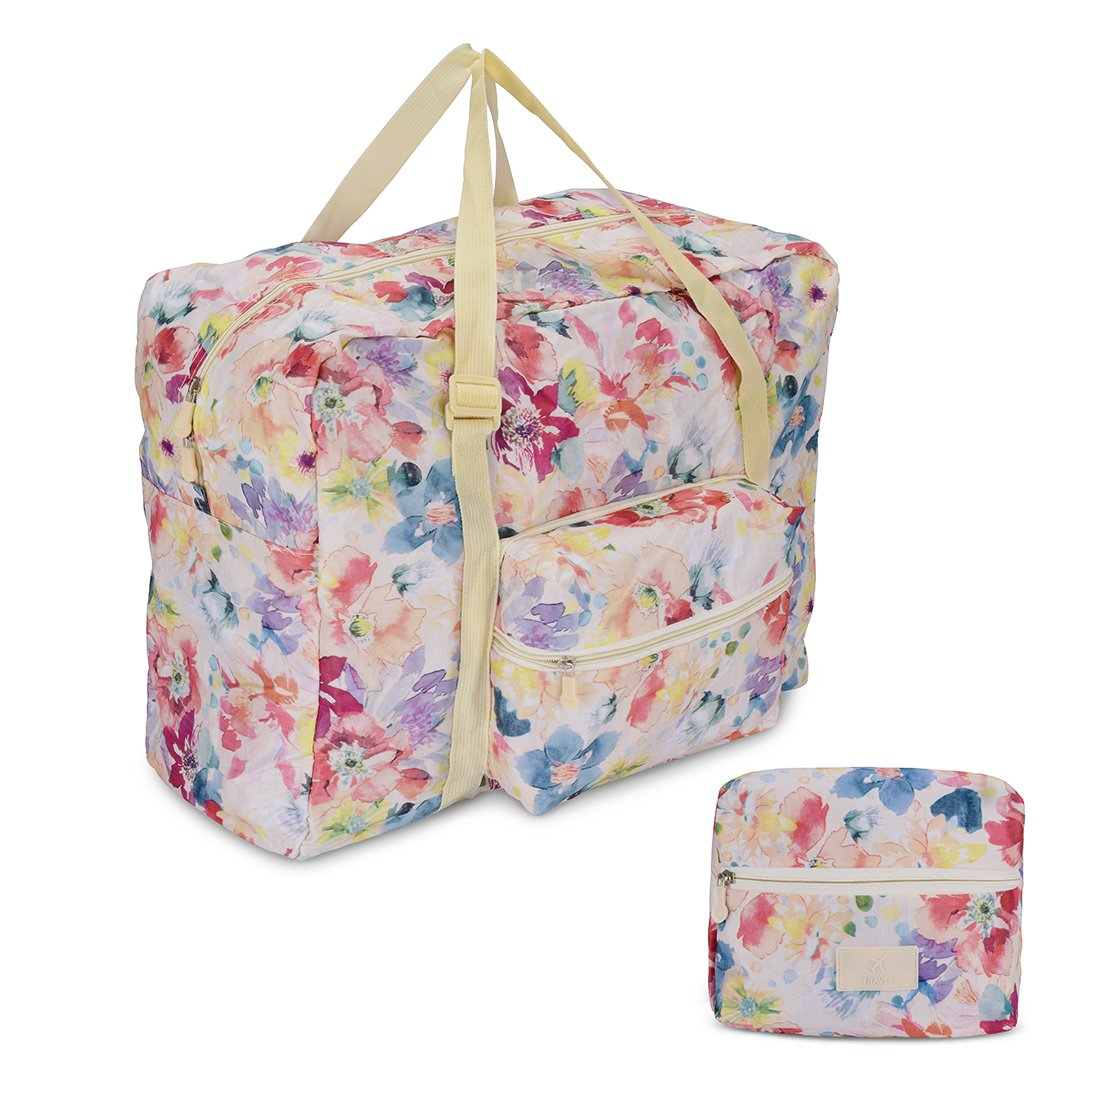 Ybester Foldable Travel Tote Bag Waterproof High Capacity Portable Storage Luggage Bag (Pink Floral)